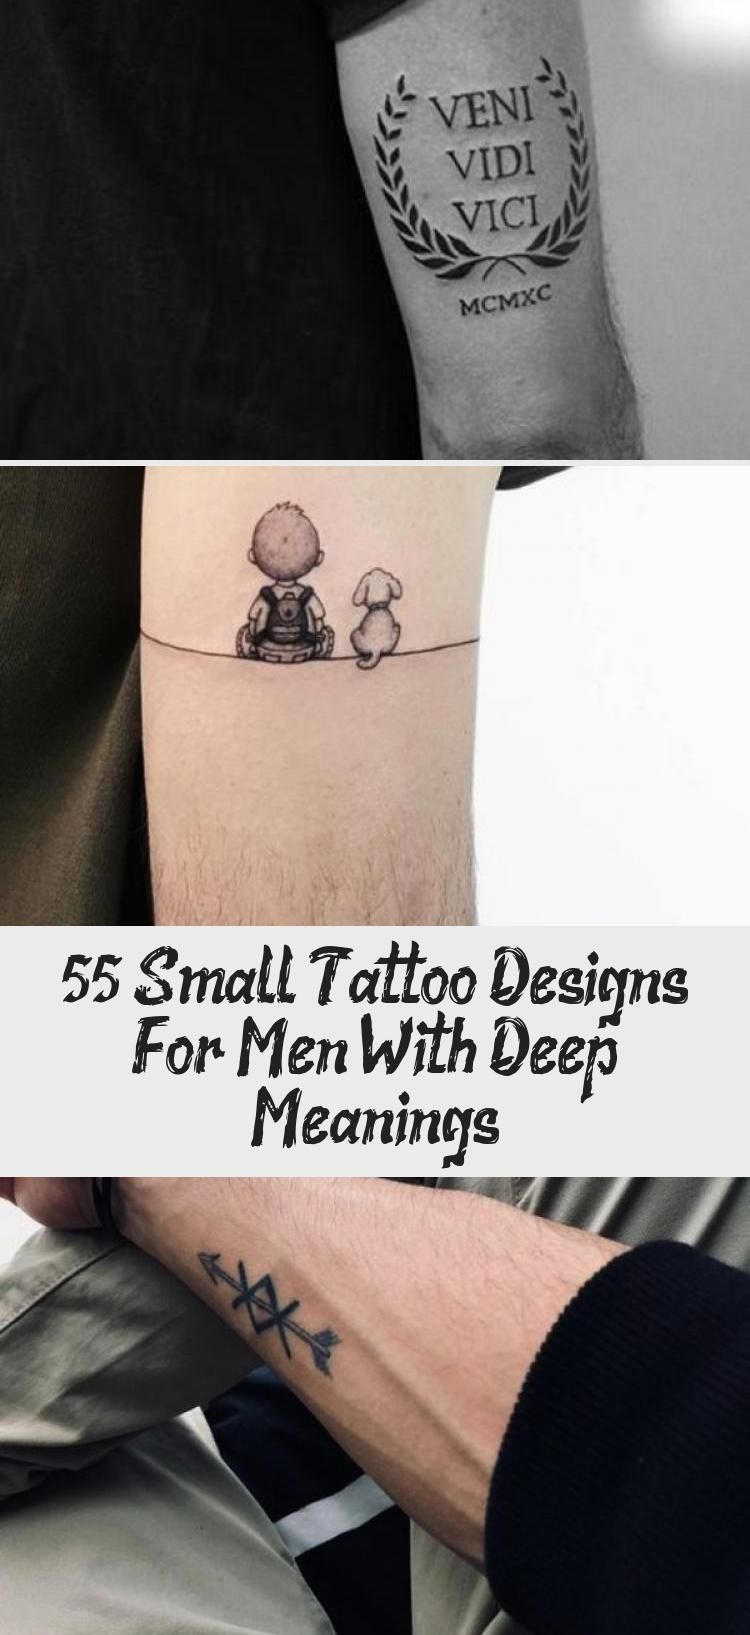 Small Tattoo Designs For Men With Deep Meanings Tattooideenarm Tattooideenoldschool Tattooideenobera In 2020 Small Tattoos Tattoo Designs Men Small Tattoos For Guys